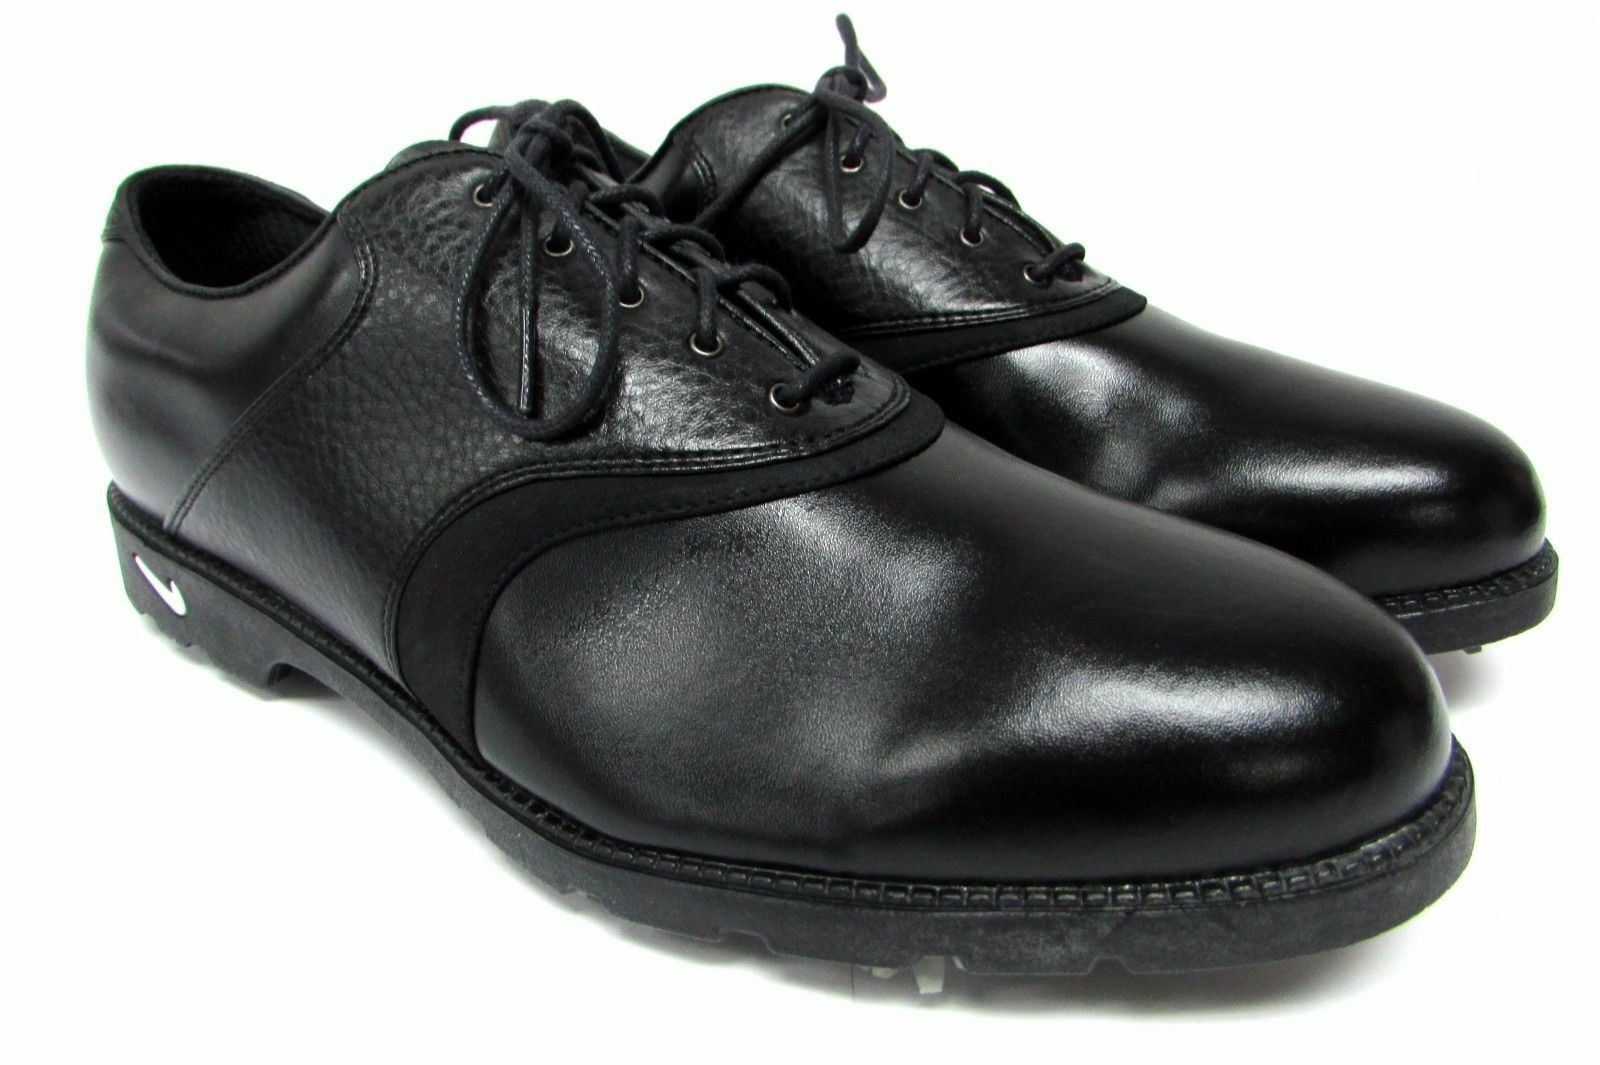 Nike Waverly Last Air Comfort Golf Soft Spike Black Leather Men's US 10 M shoes